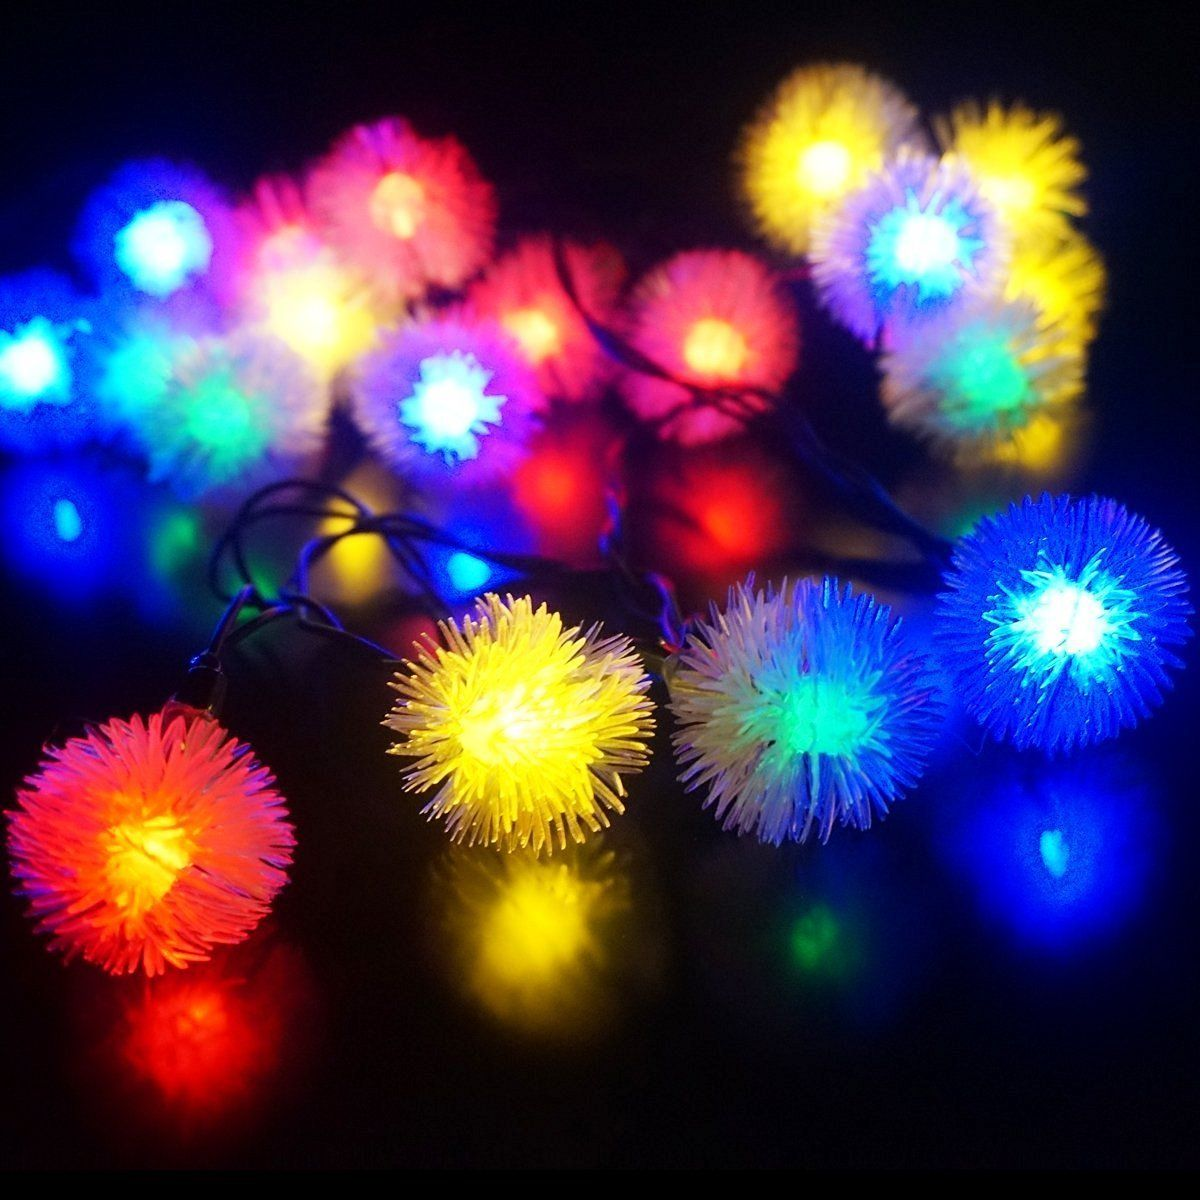 Fashionlite solar lights 50 leds chuzzle ball solar powered string fashionlite solar lights 50 leds chuzzle ball solar powered string lights outdoor christmas lights garden yard mozeypictures